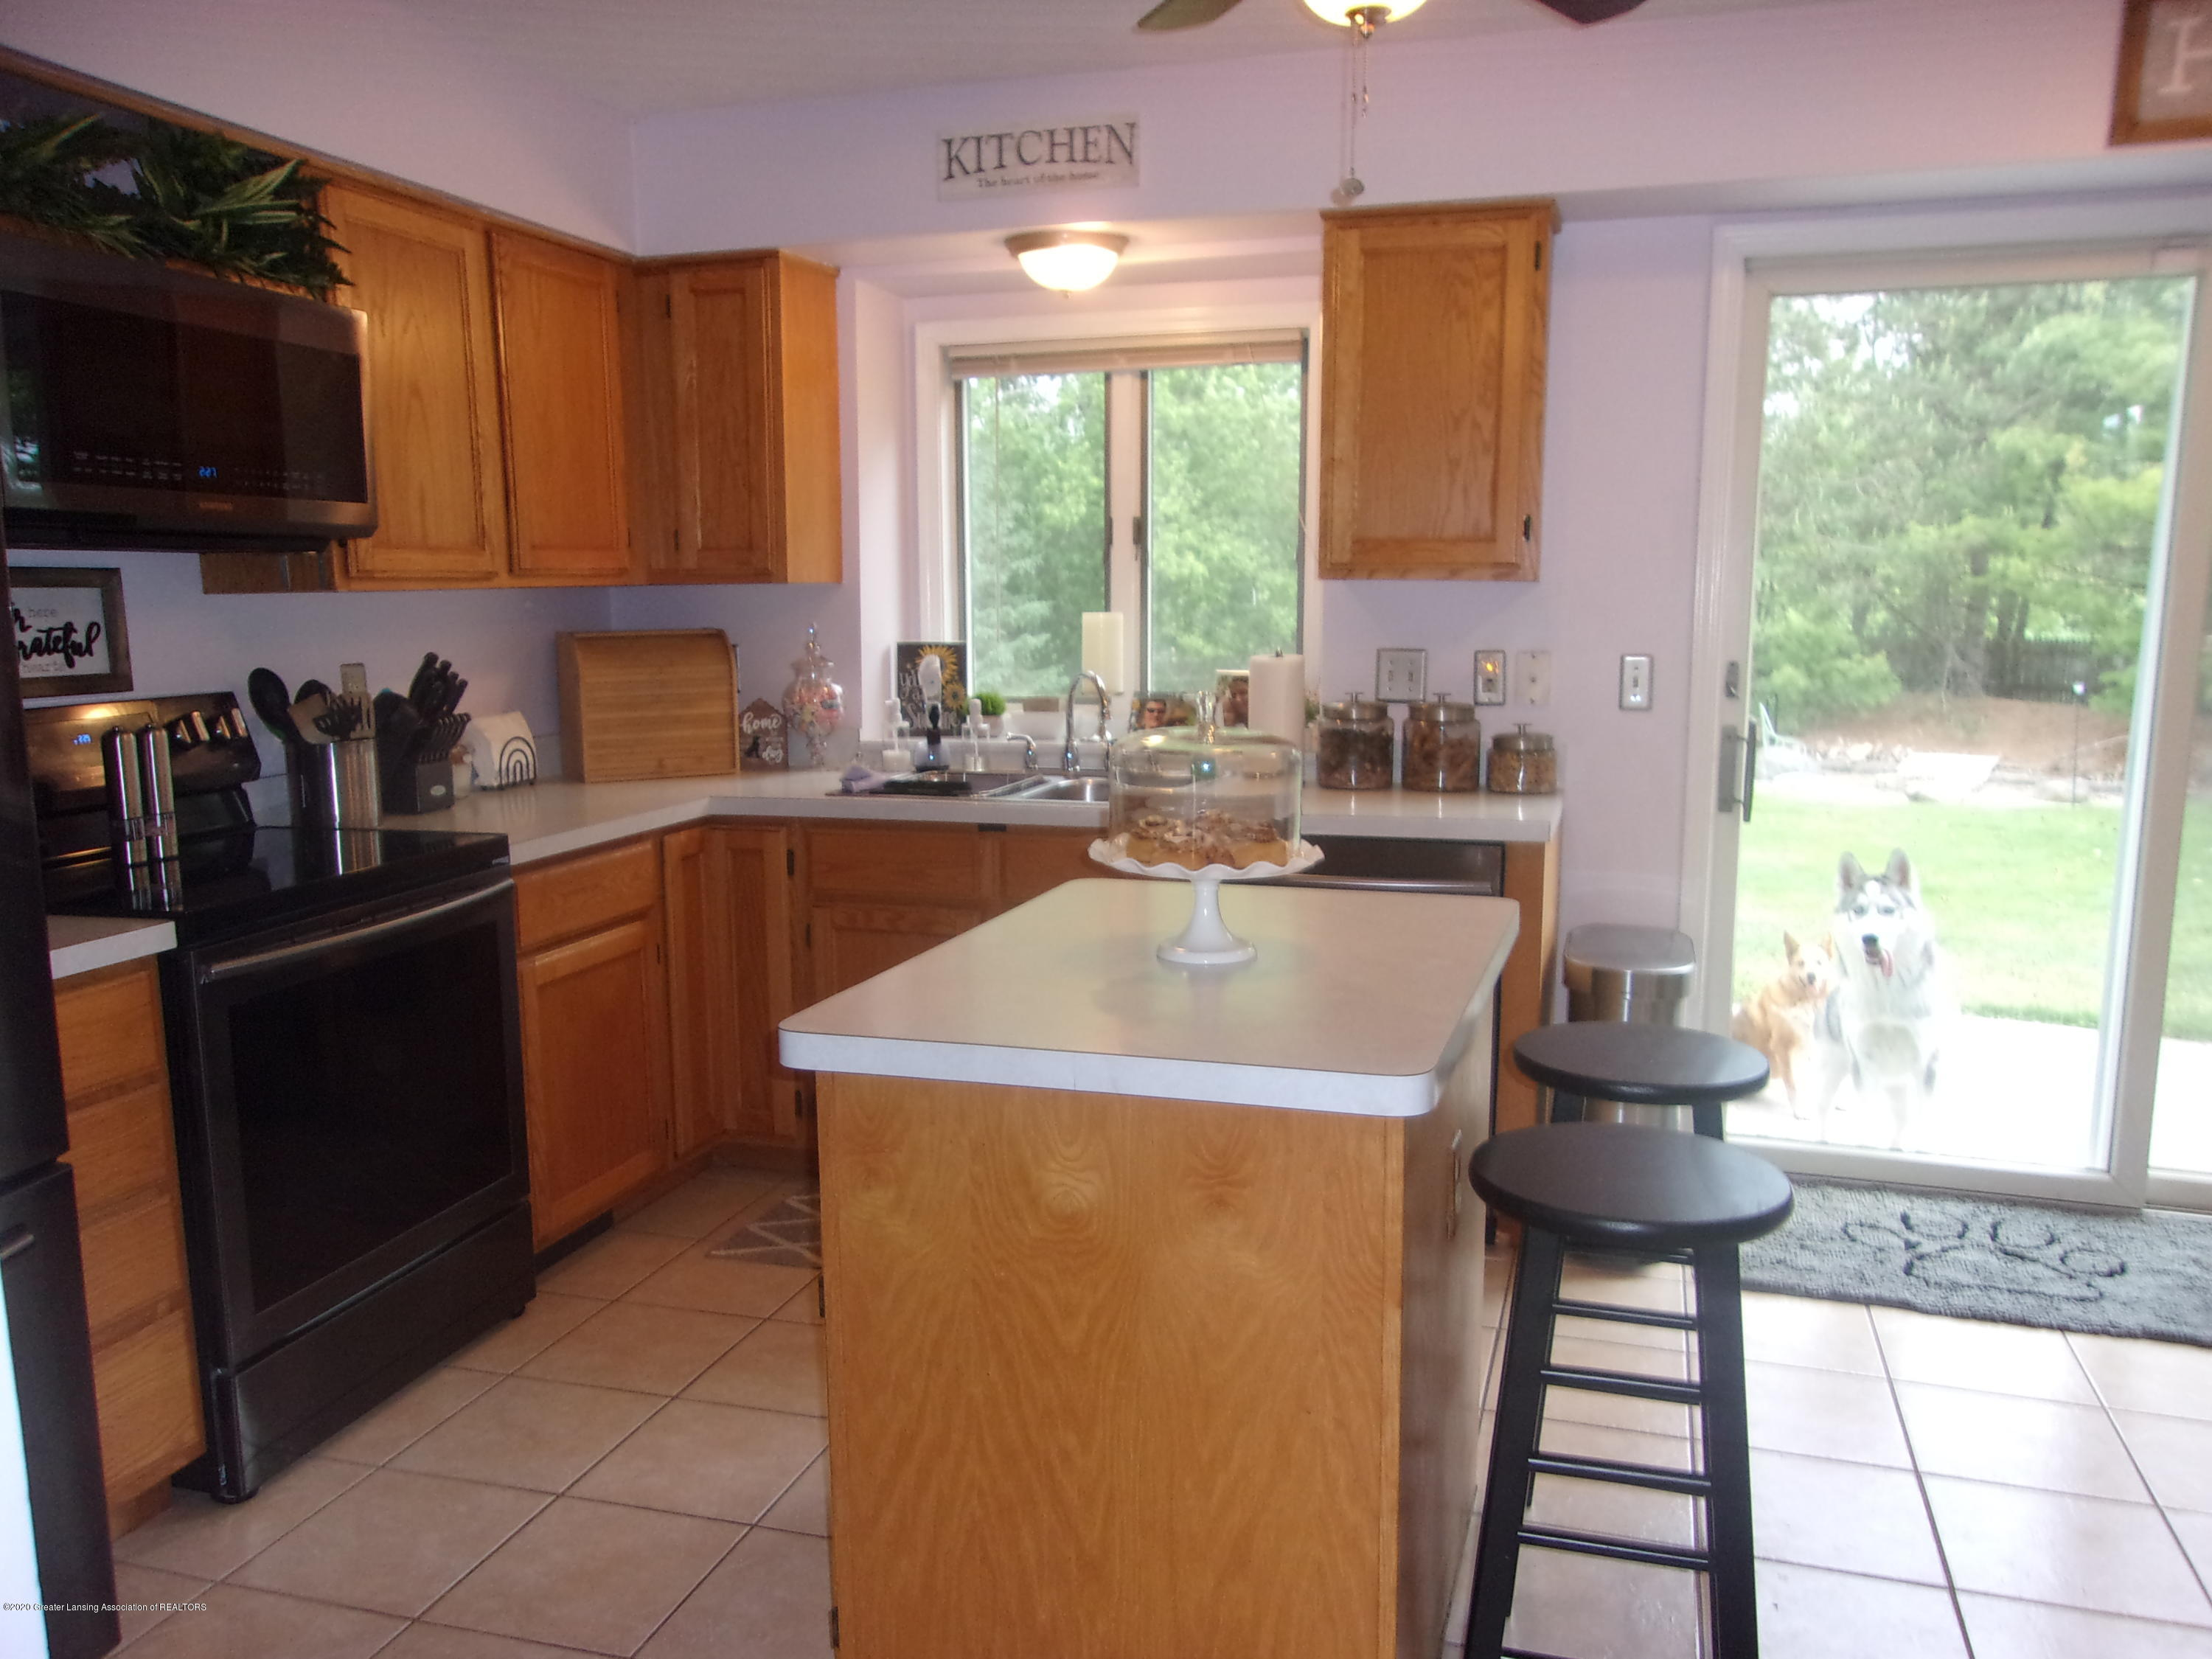 3991 Windy Heights Dr - 100_0988 - 21